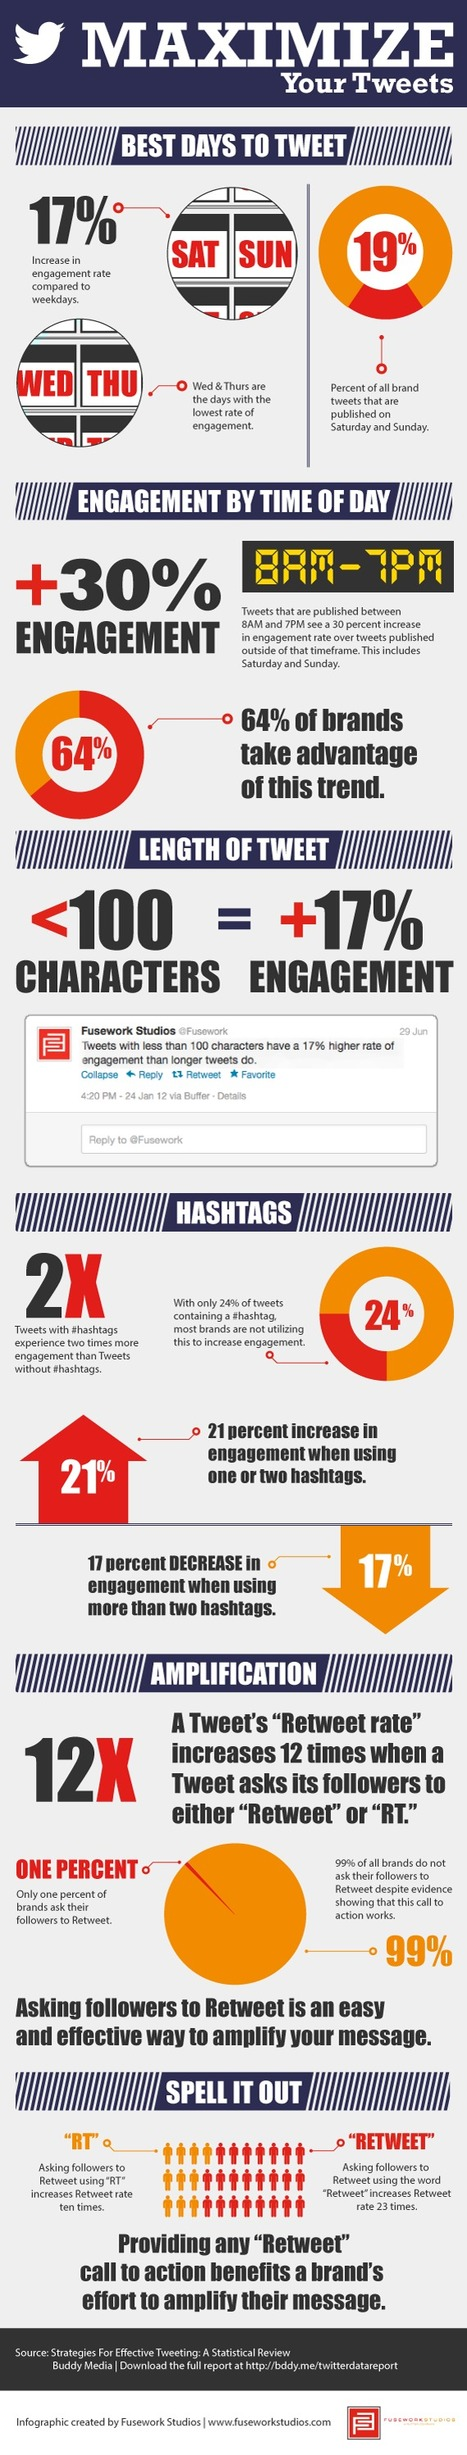 Maximizing Your Tweets – Twitter Infographic 2012.. let's see what's changed | Tracking Transmedia | Scoop.it